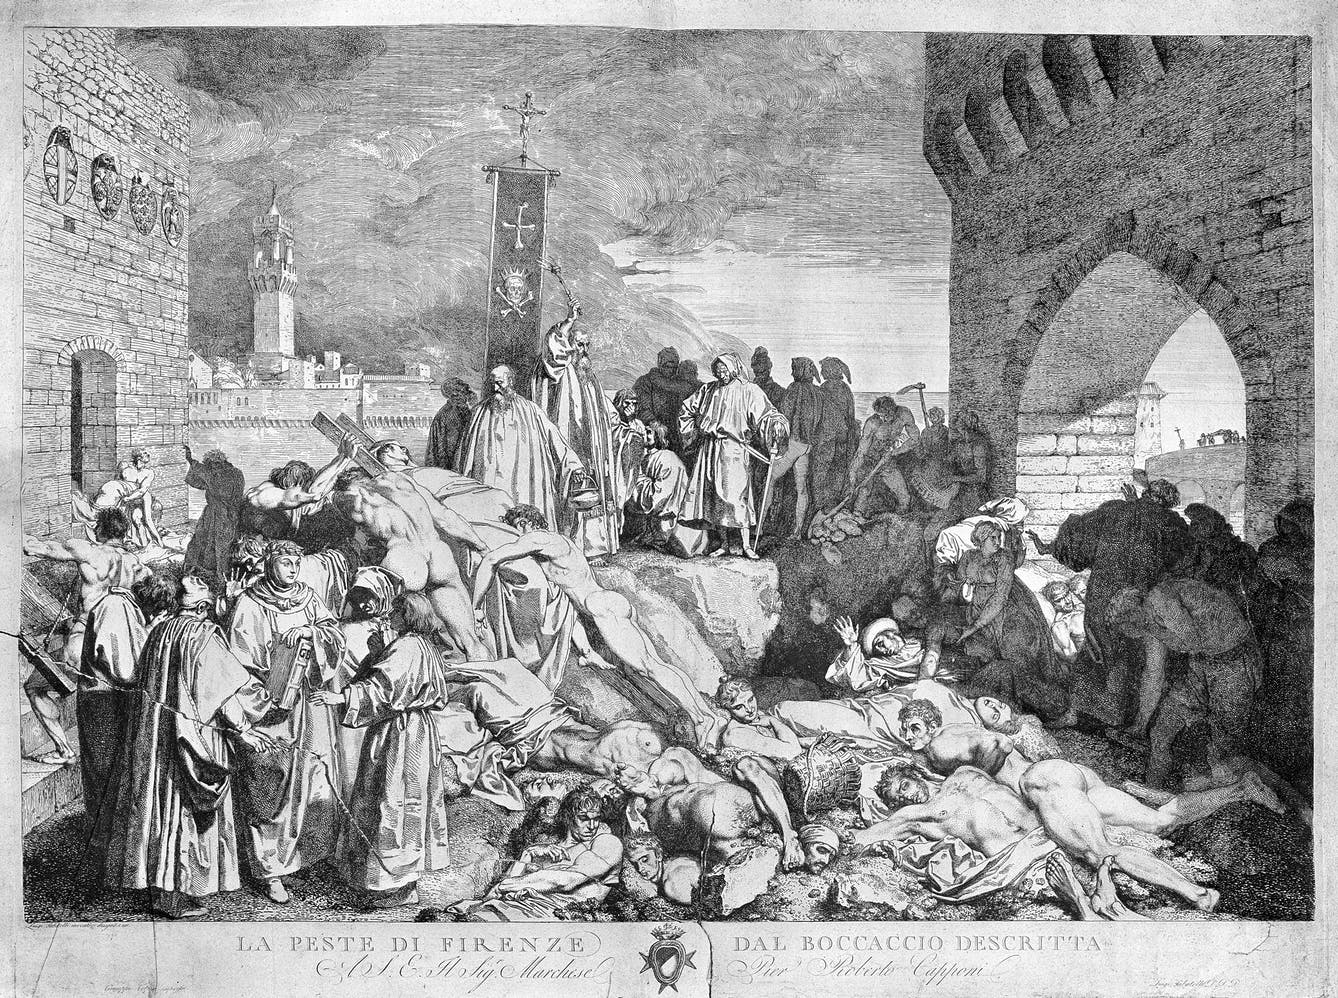 The plague of Florence in 1348, as described in Boccaccio's Decameron. Etching by L. Sabatelli after himself., Giovanni Boccaccio